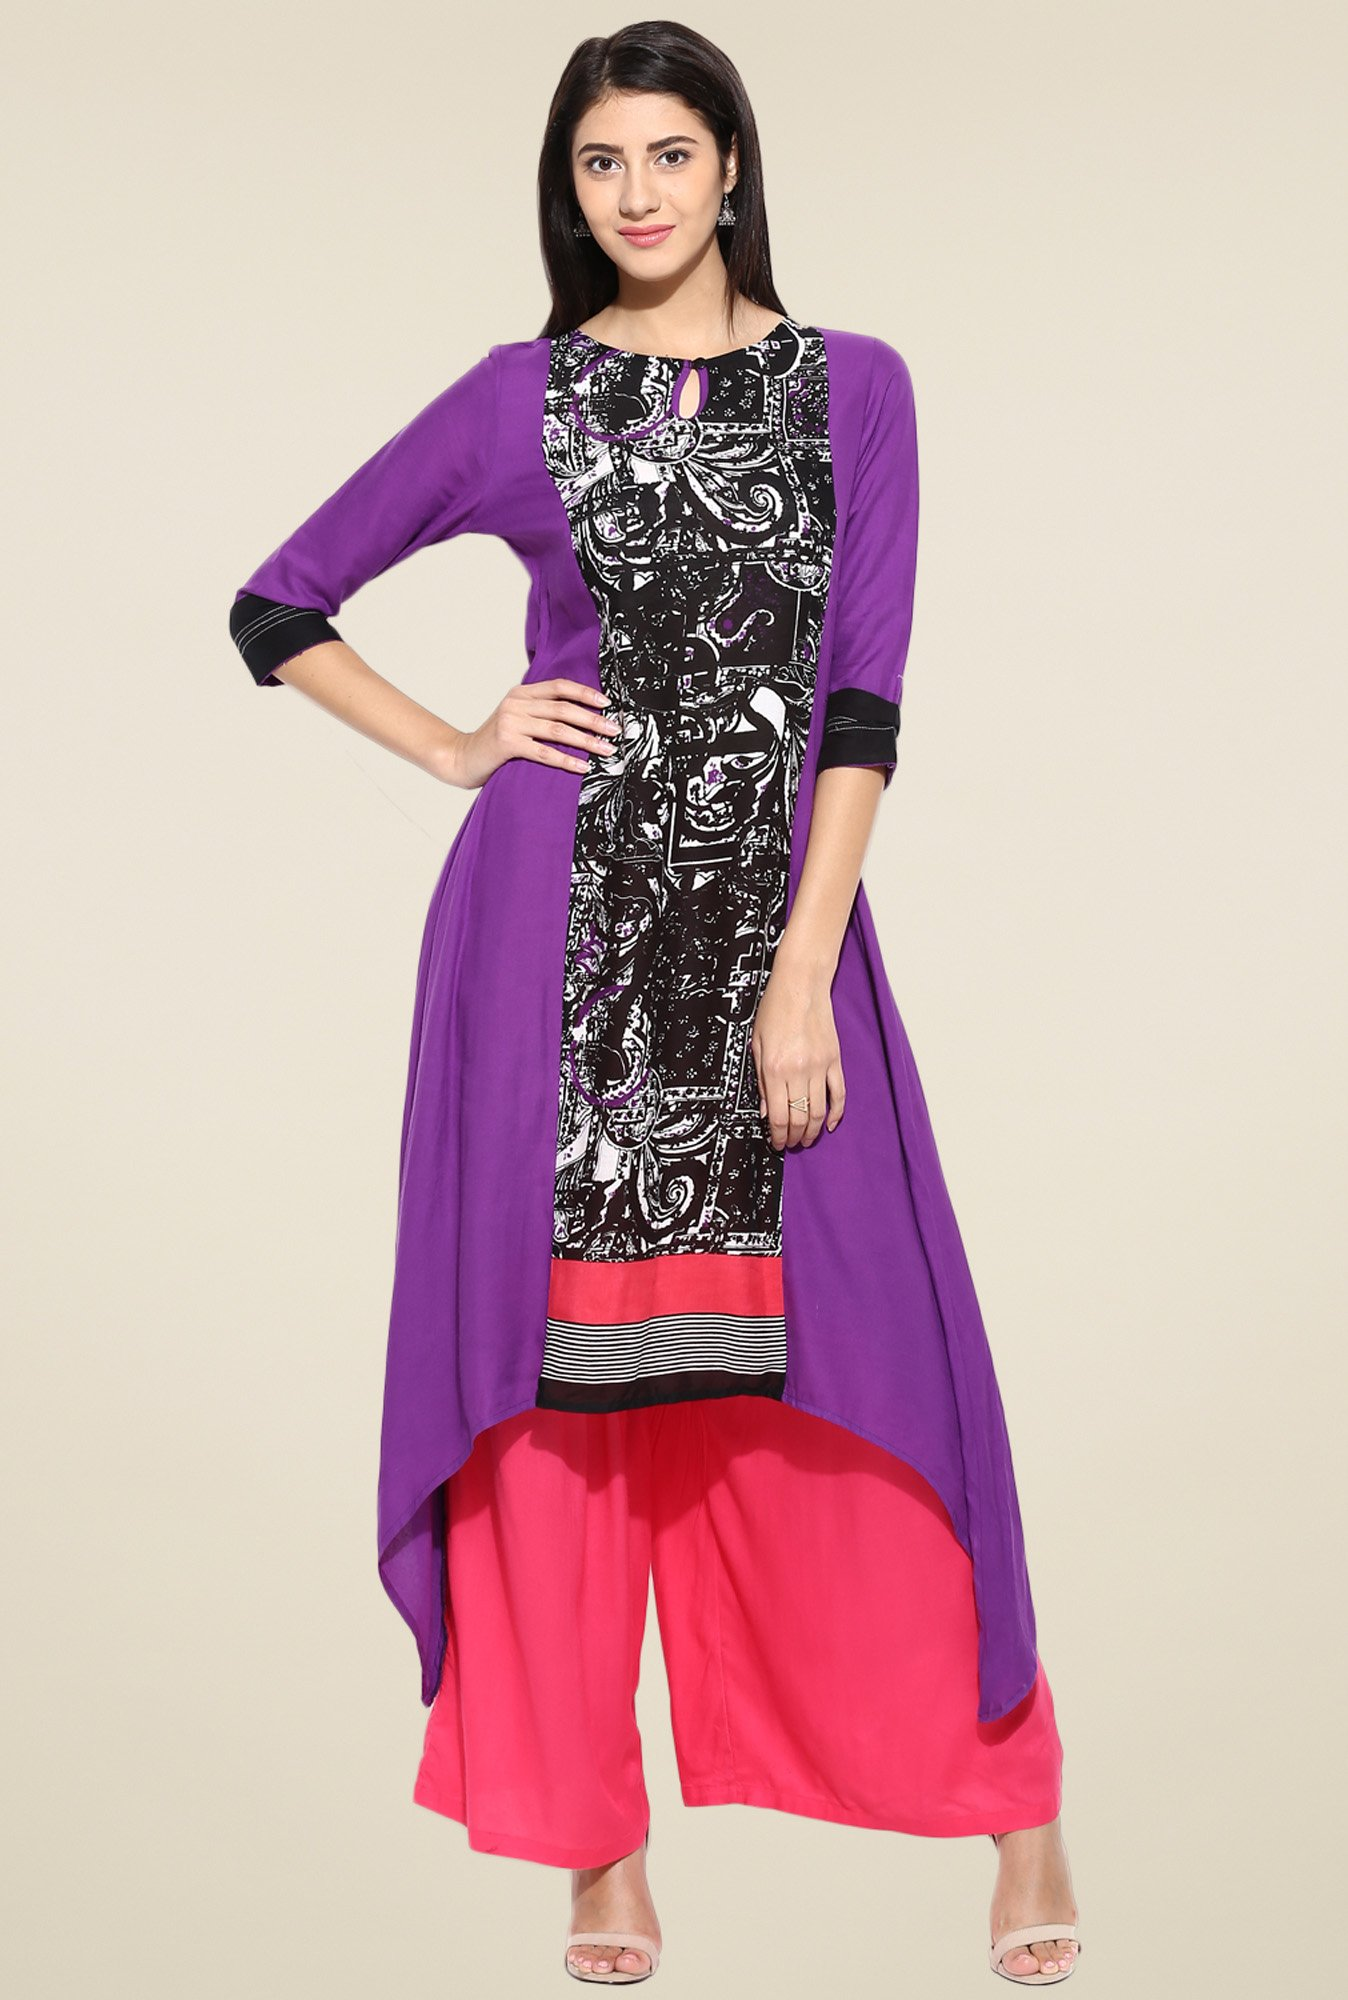 Evam Black Rayon Printed Long Kurta